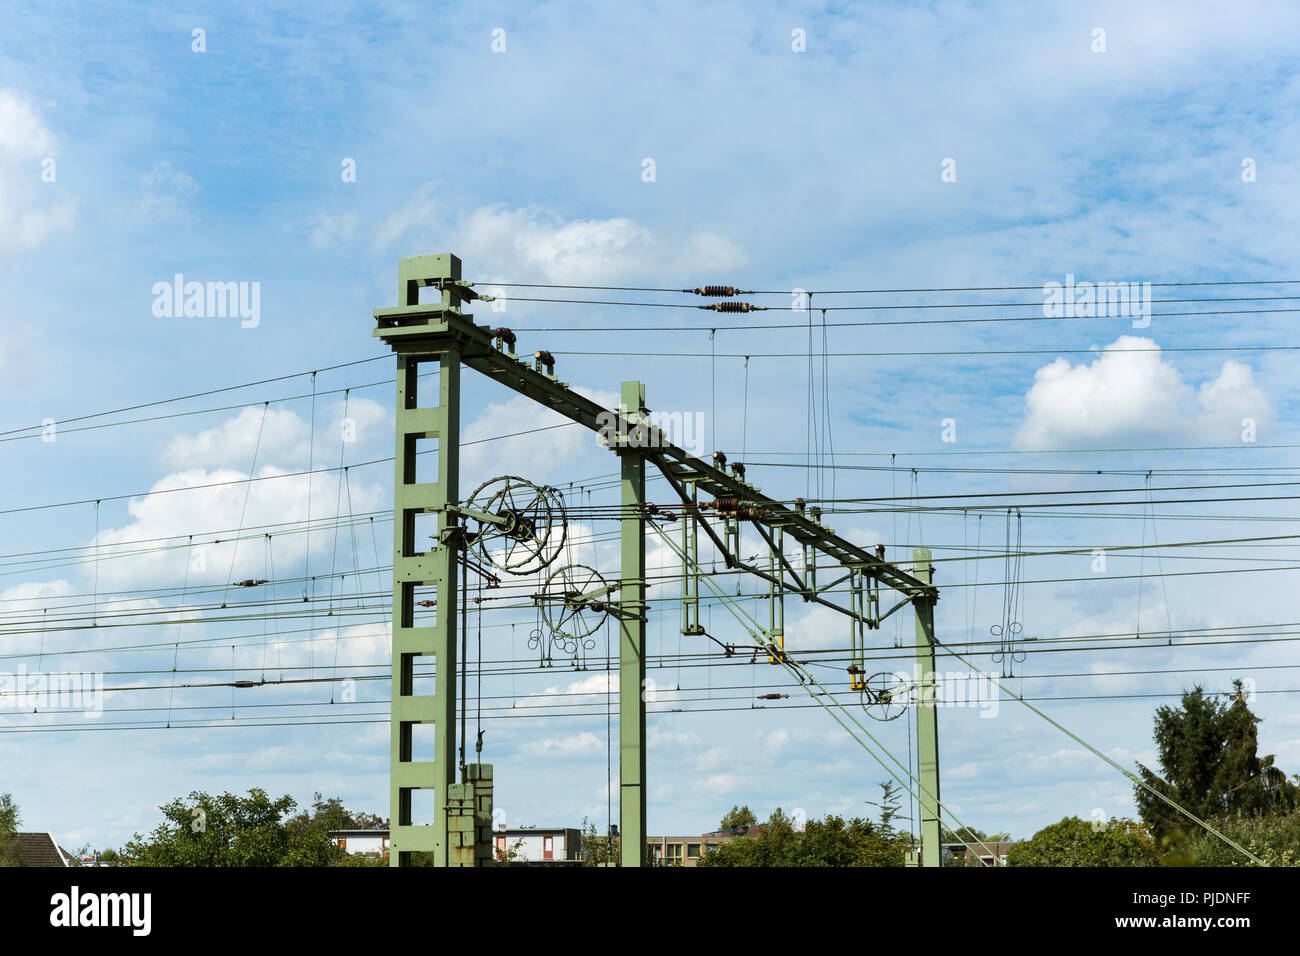 Suburban train line equipment that is seemingly out of date yet in good condition. - Stock Image